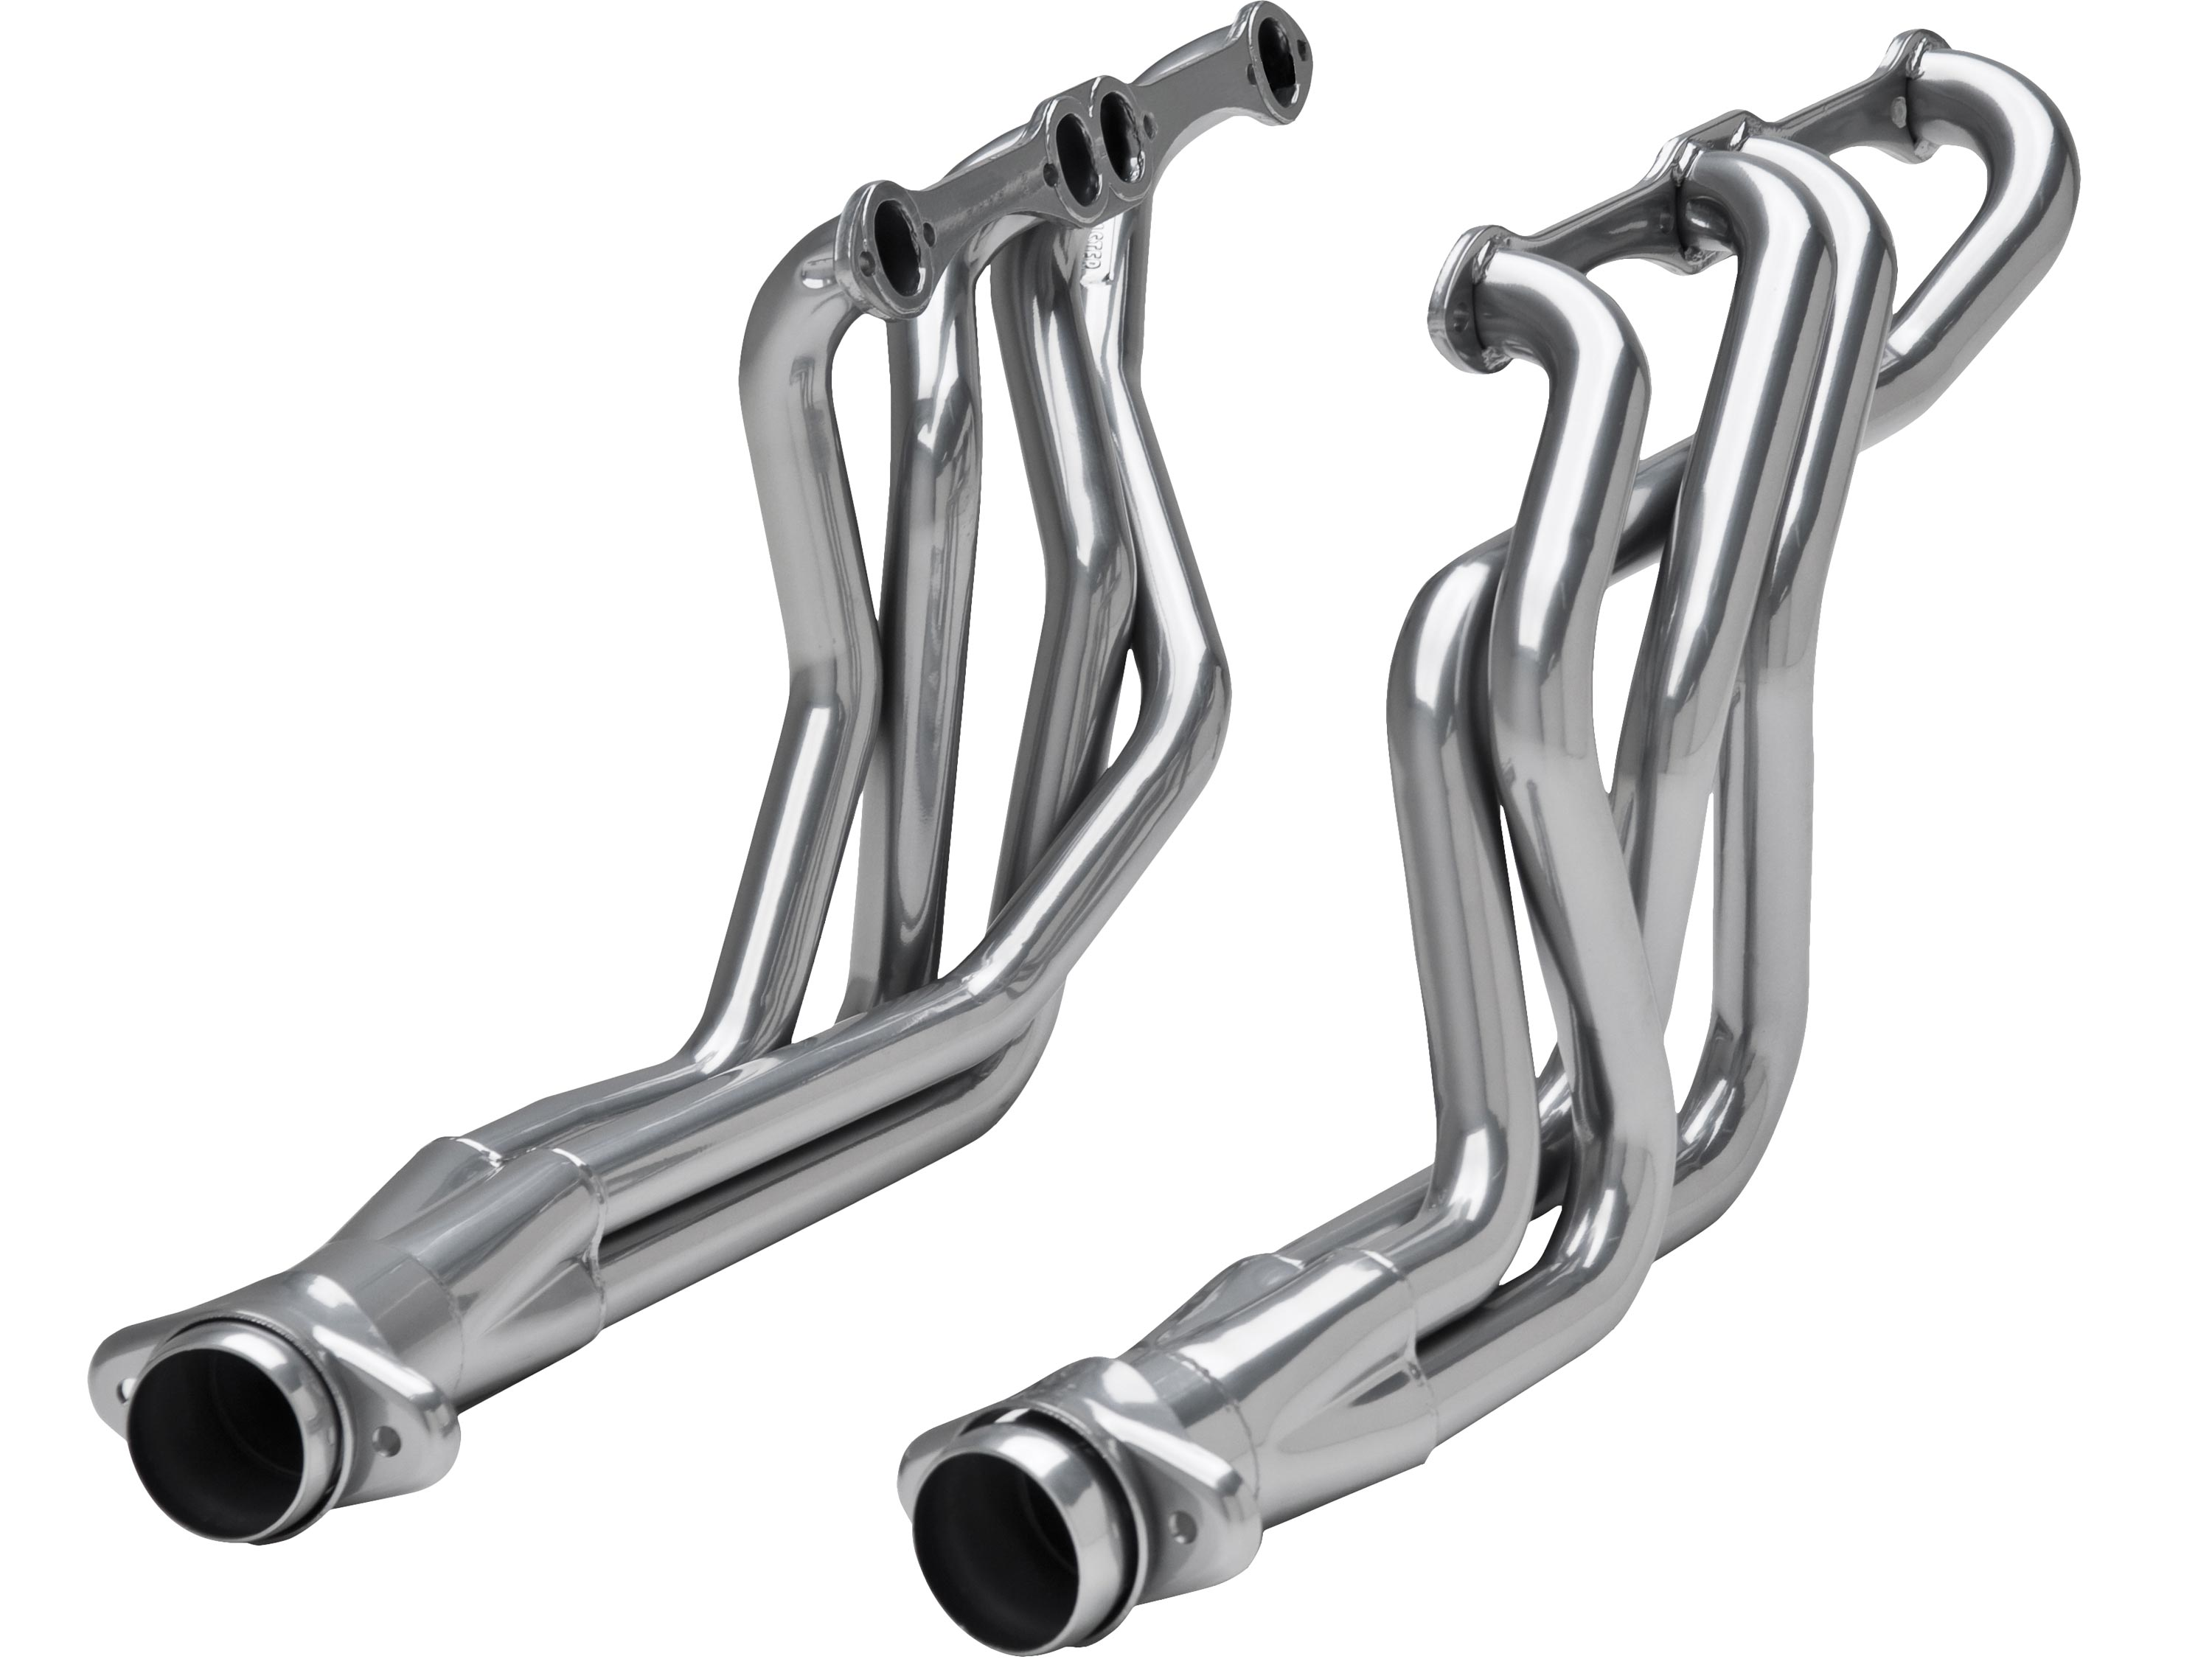 Flowmaster Adds Stainless Steel Headers To Complement ...